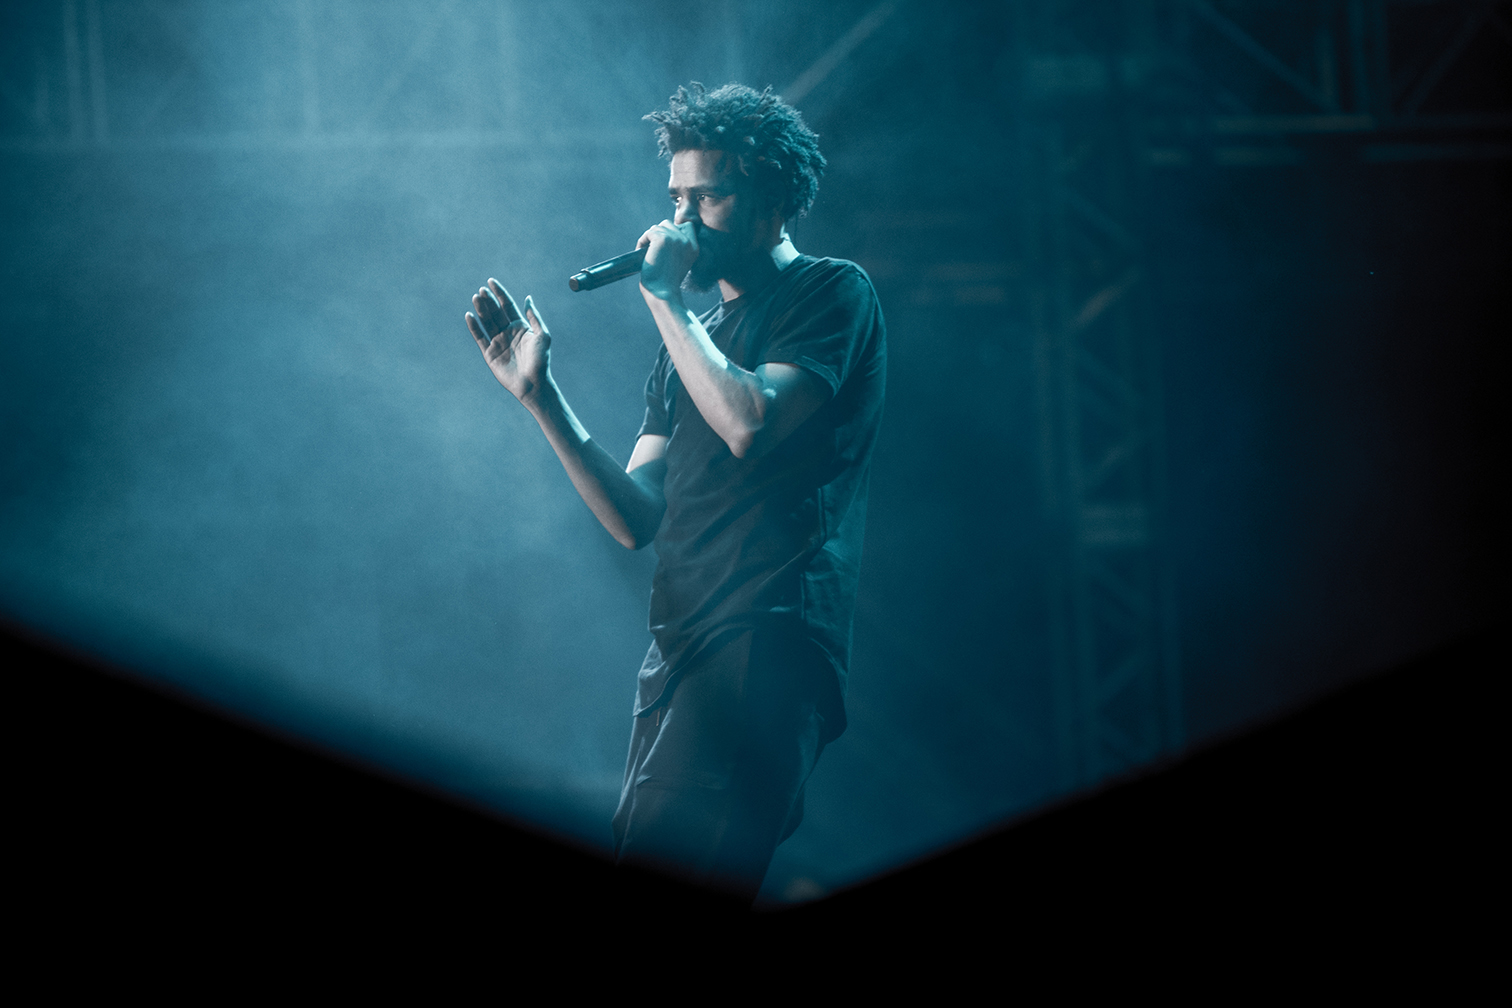 j-cole-pemberton-music-festival-jcole-hip-hop-rap-music-blue.jpg